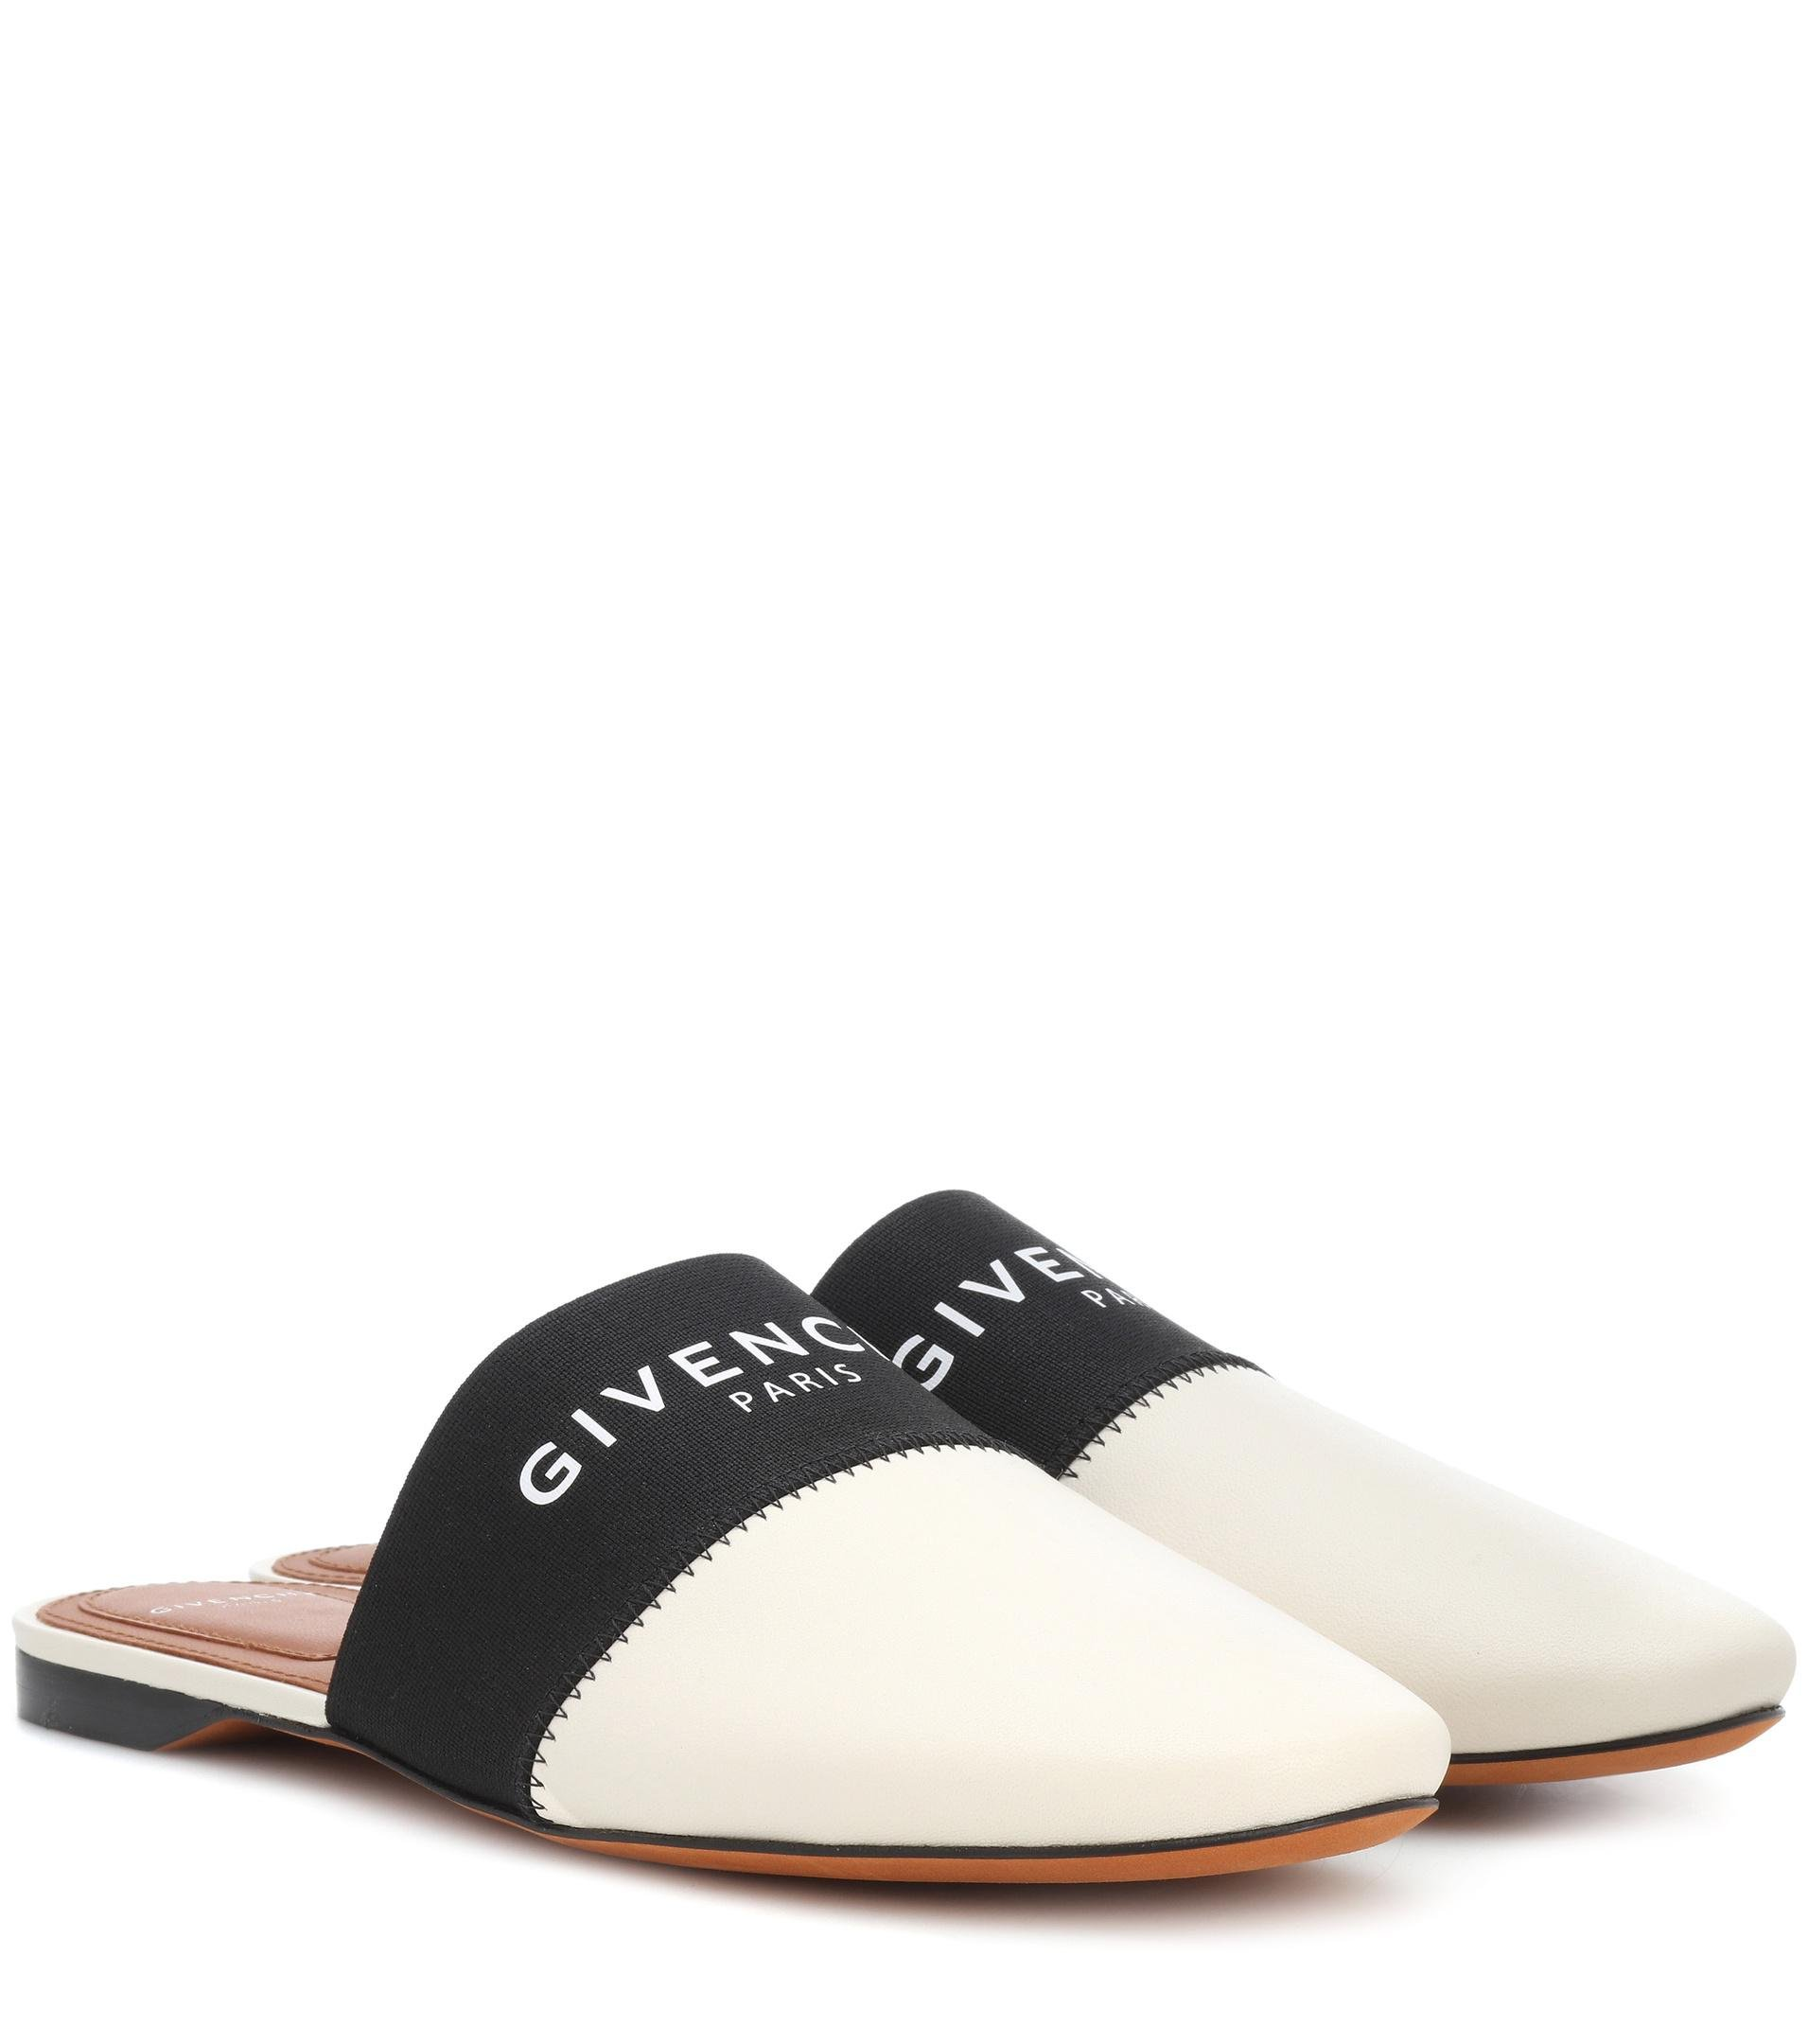 Givenchy Leather Slippers in White - Lyst